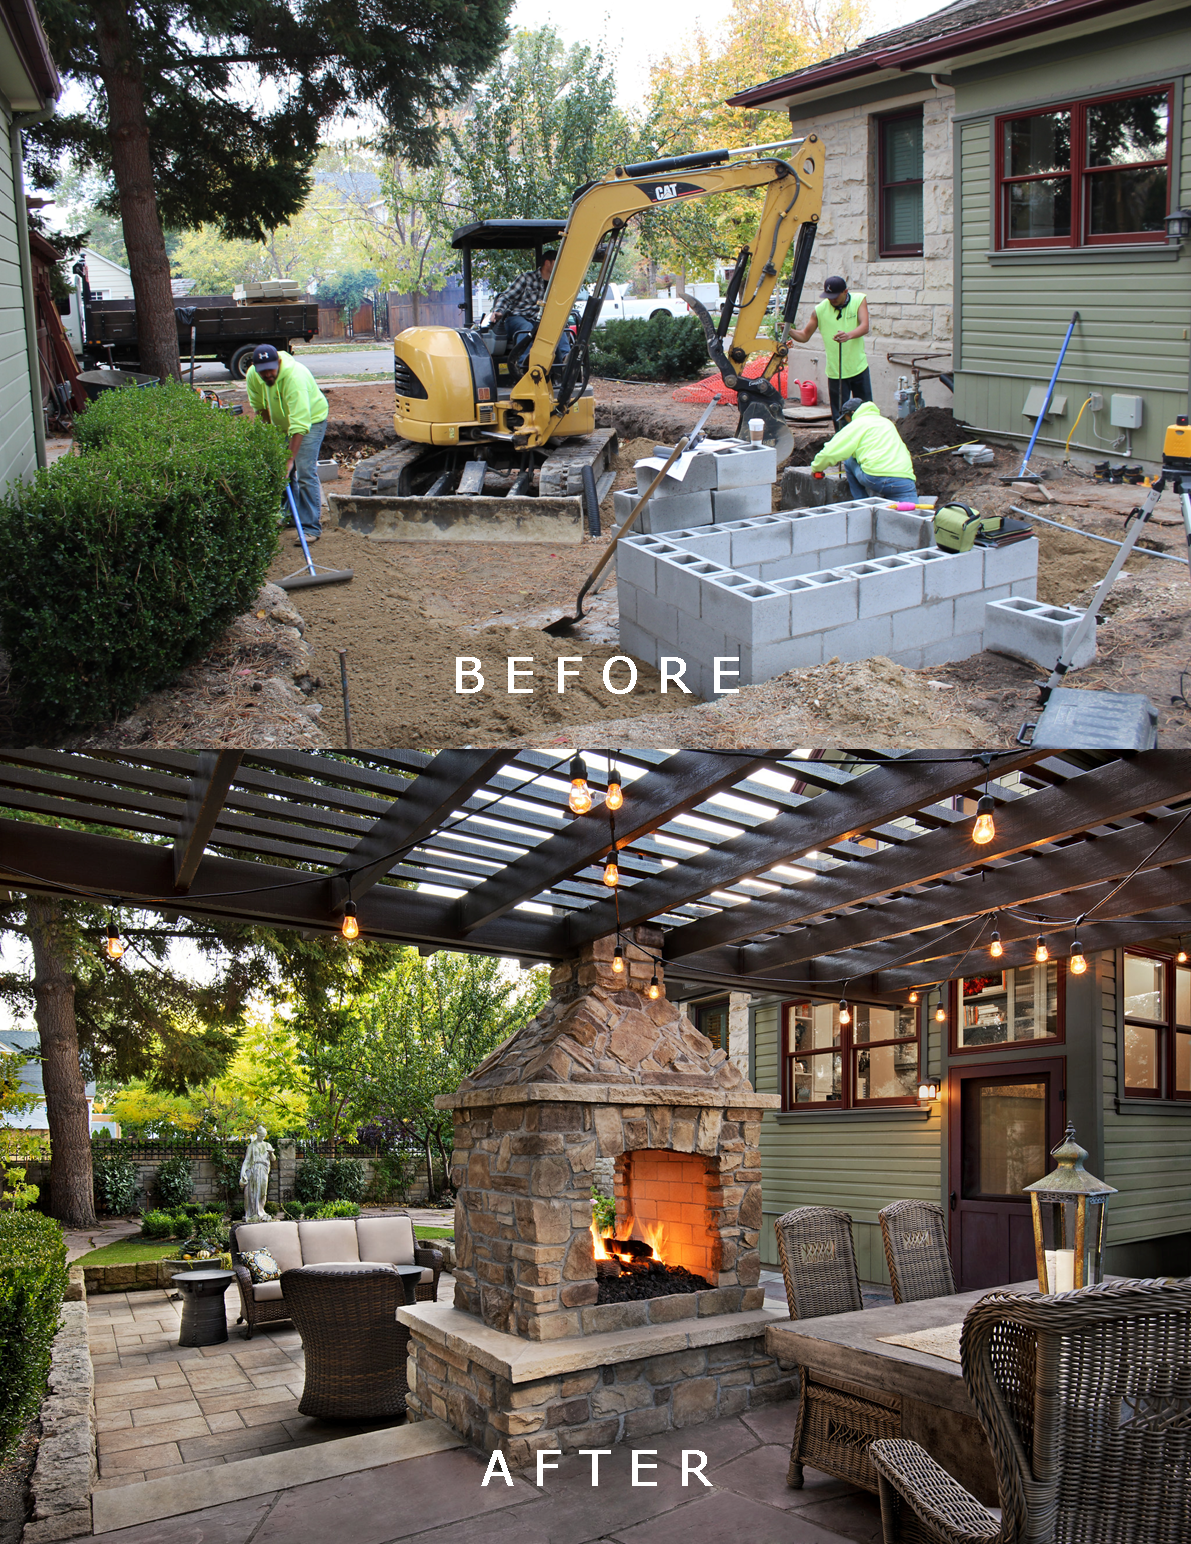 Harrison Residence: Before/After | The Garden Artist Boise, ID